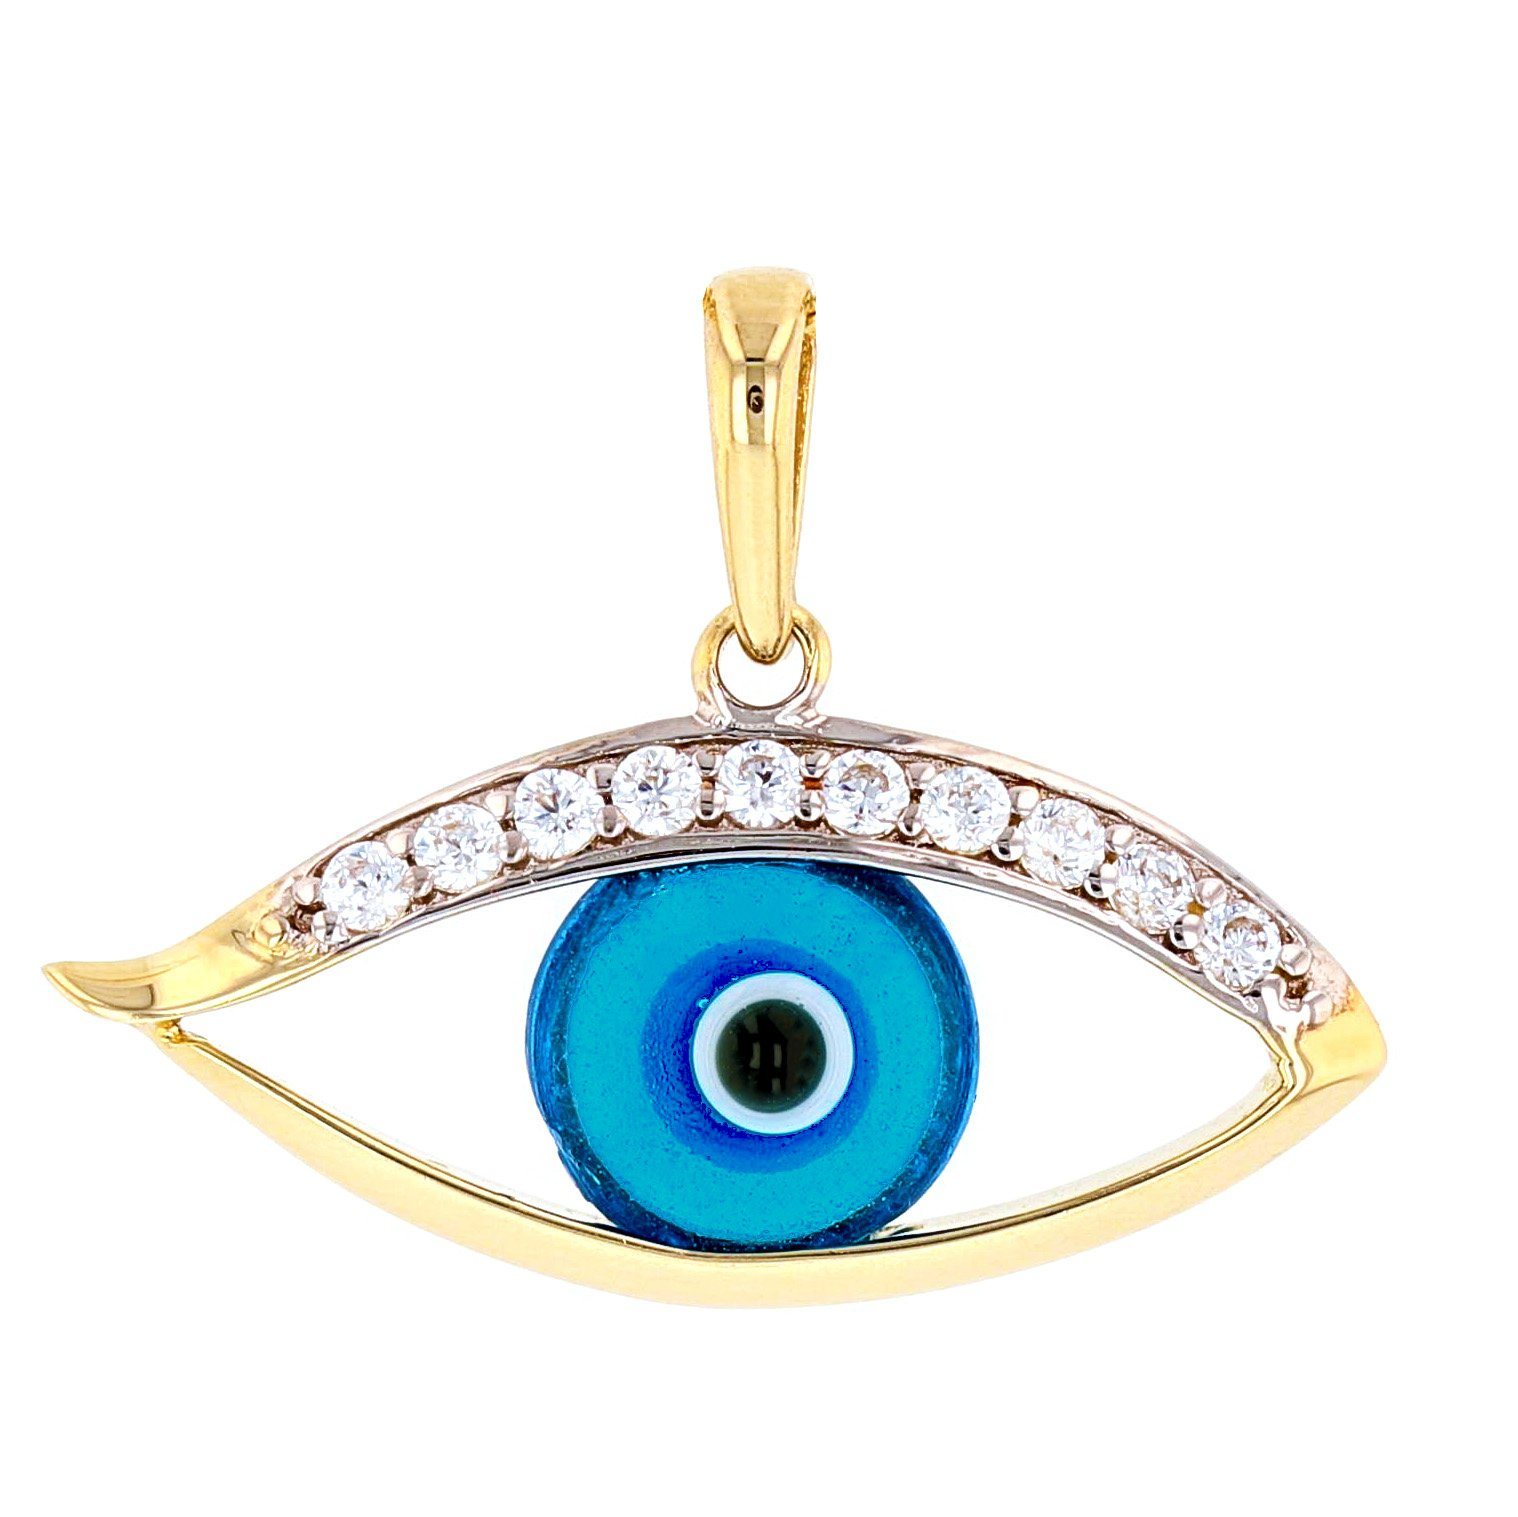 Polished 14k Gold Blue Evil Eye with Cubic Zirconia Charm Pendant